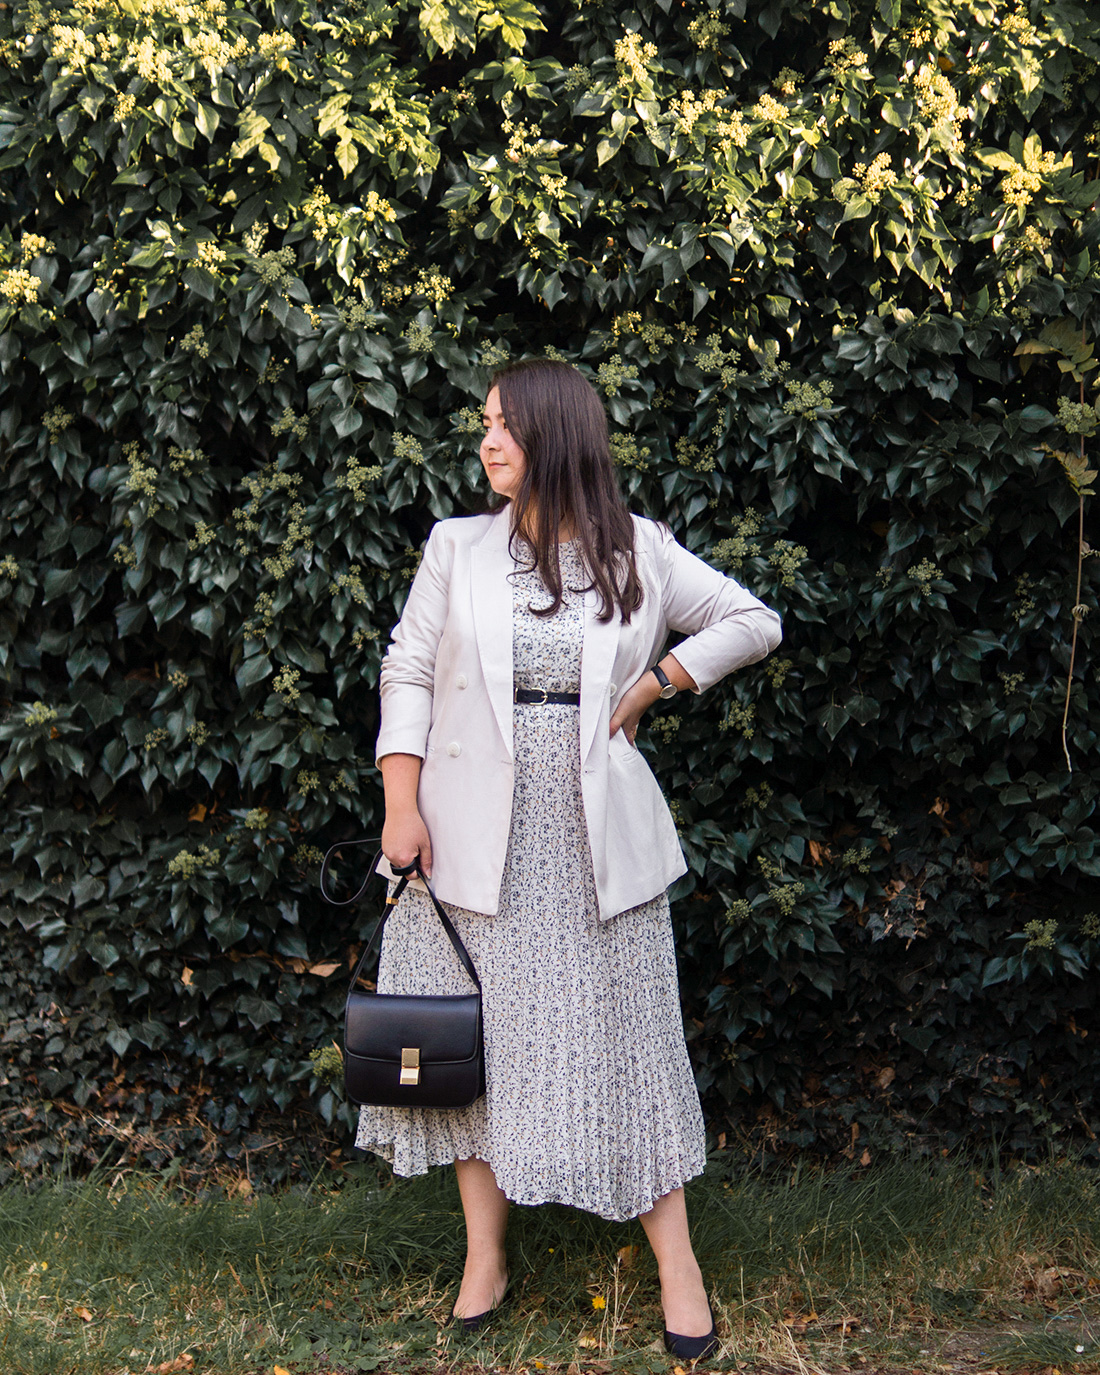 Midsize-classic-style-outfits-printed-dress-blazer